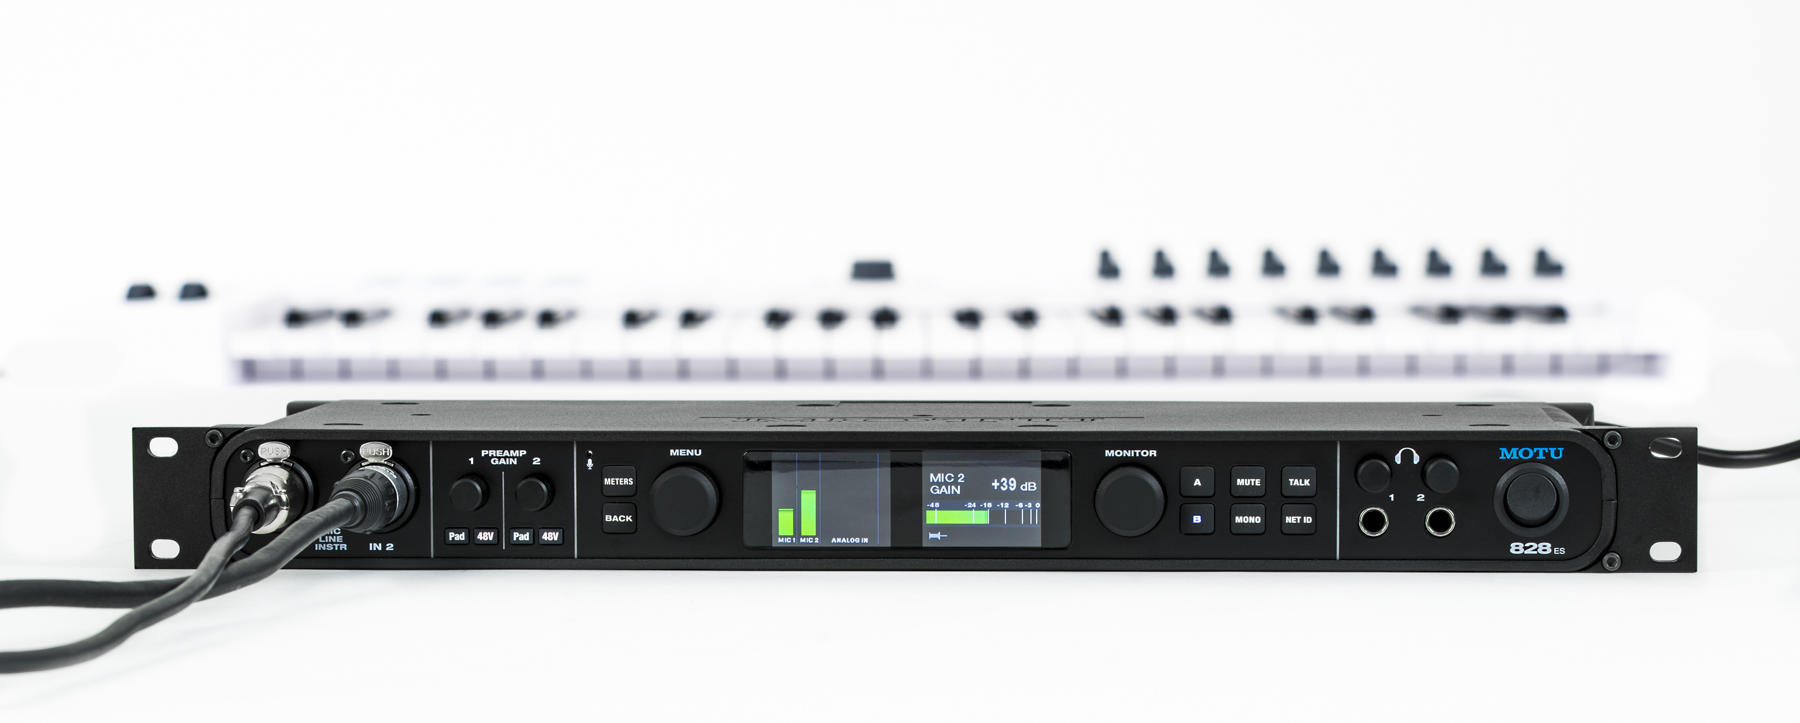 Test: Audio Interface MOTU 828es